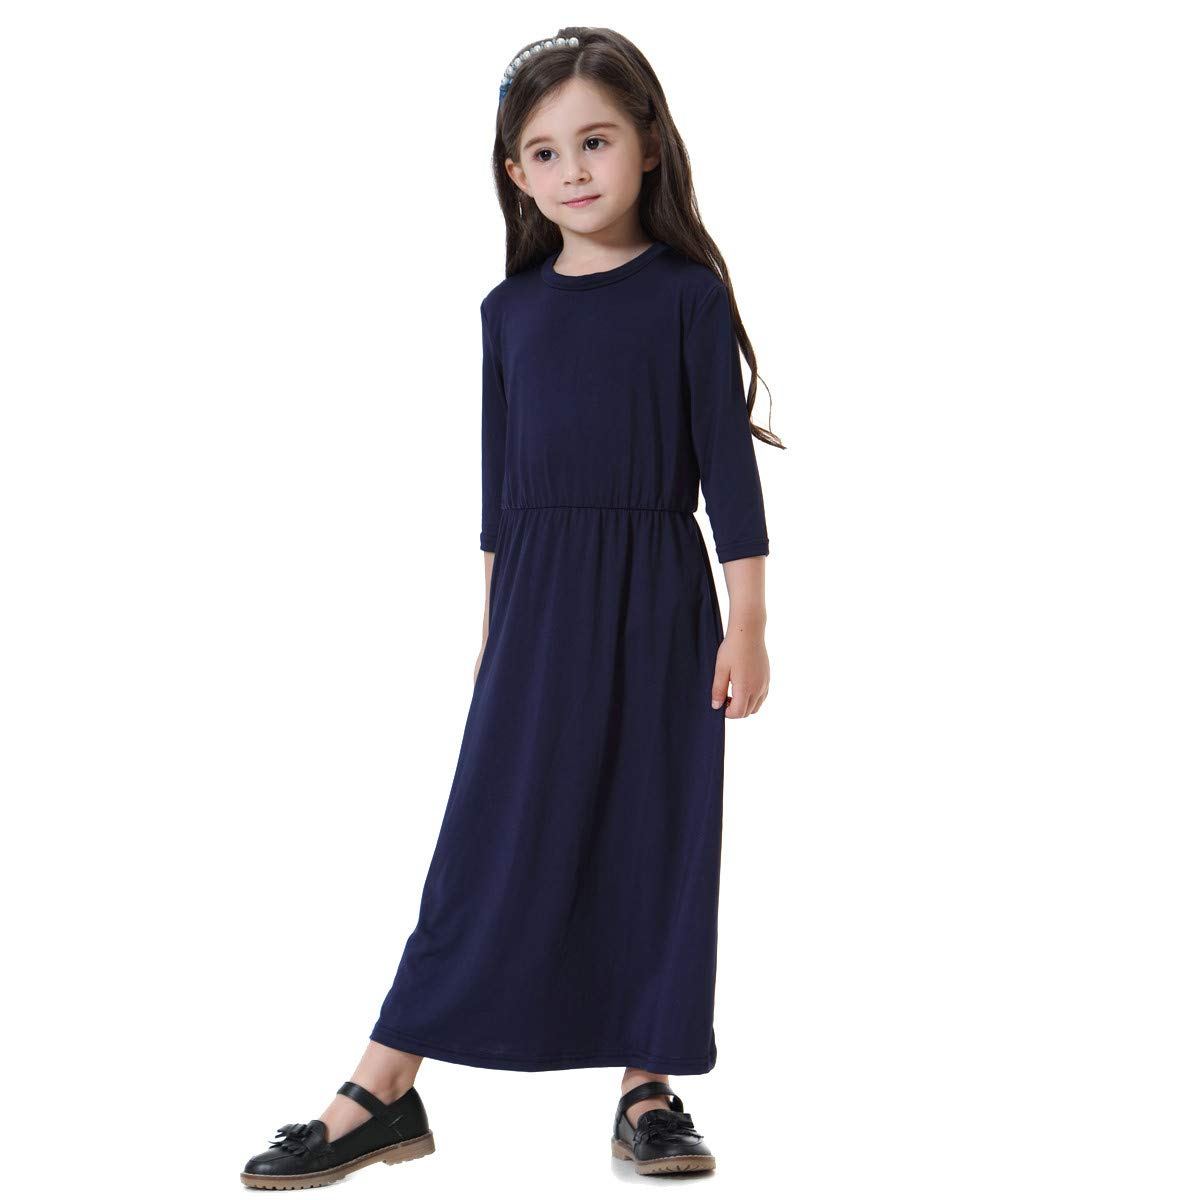 Gonxifacai Toddler Kids Children Girls Winter Muslim Solid Long Sleeve Dress Casual Long Dess